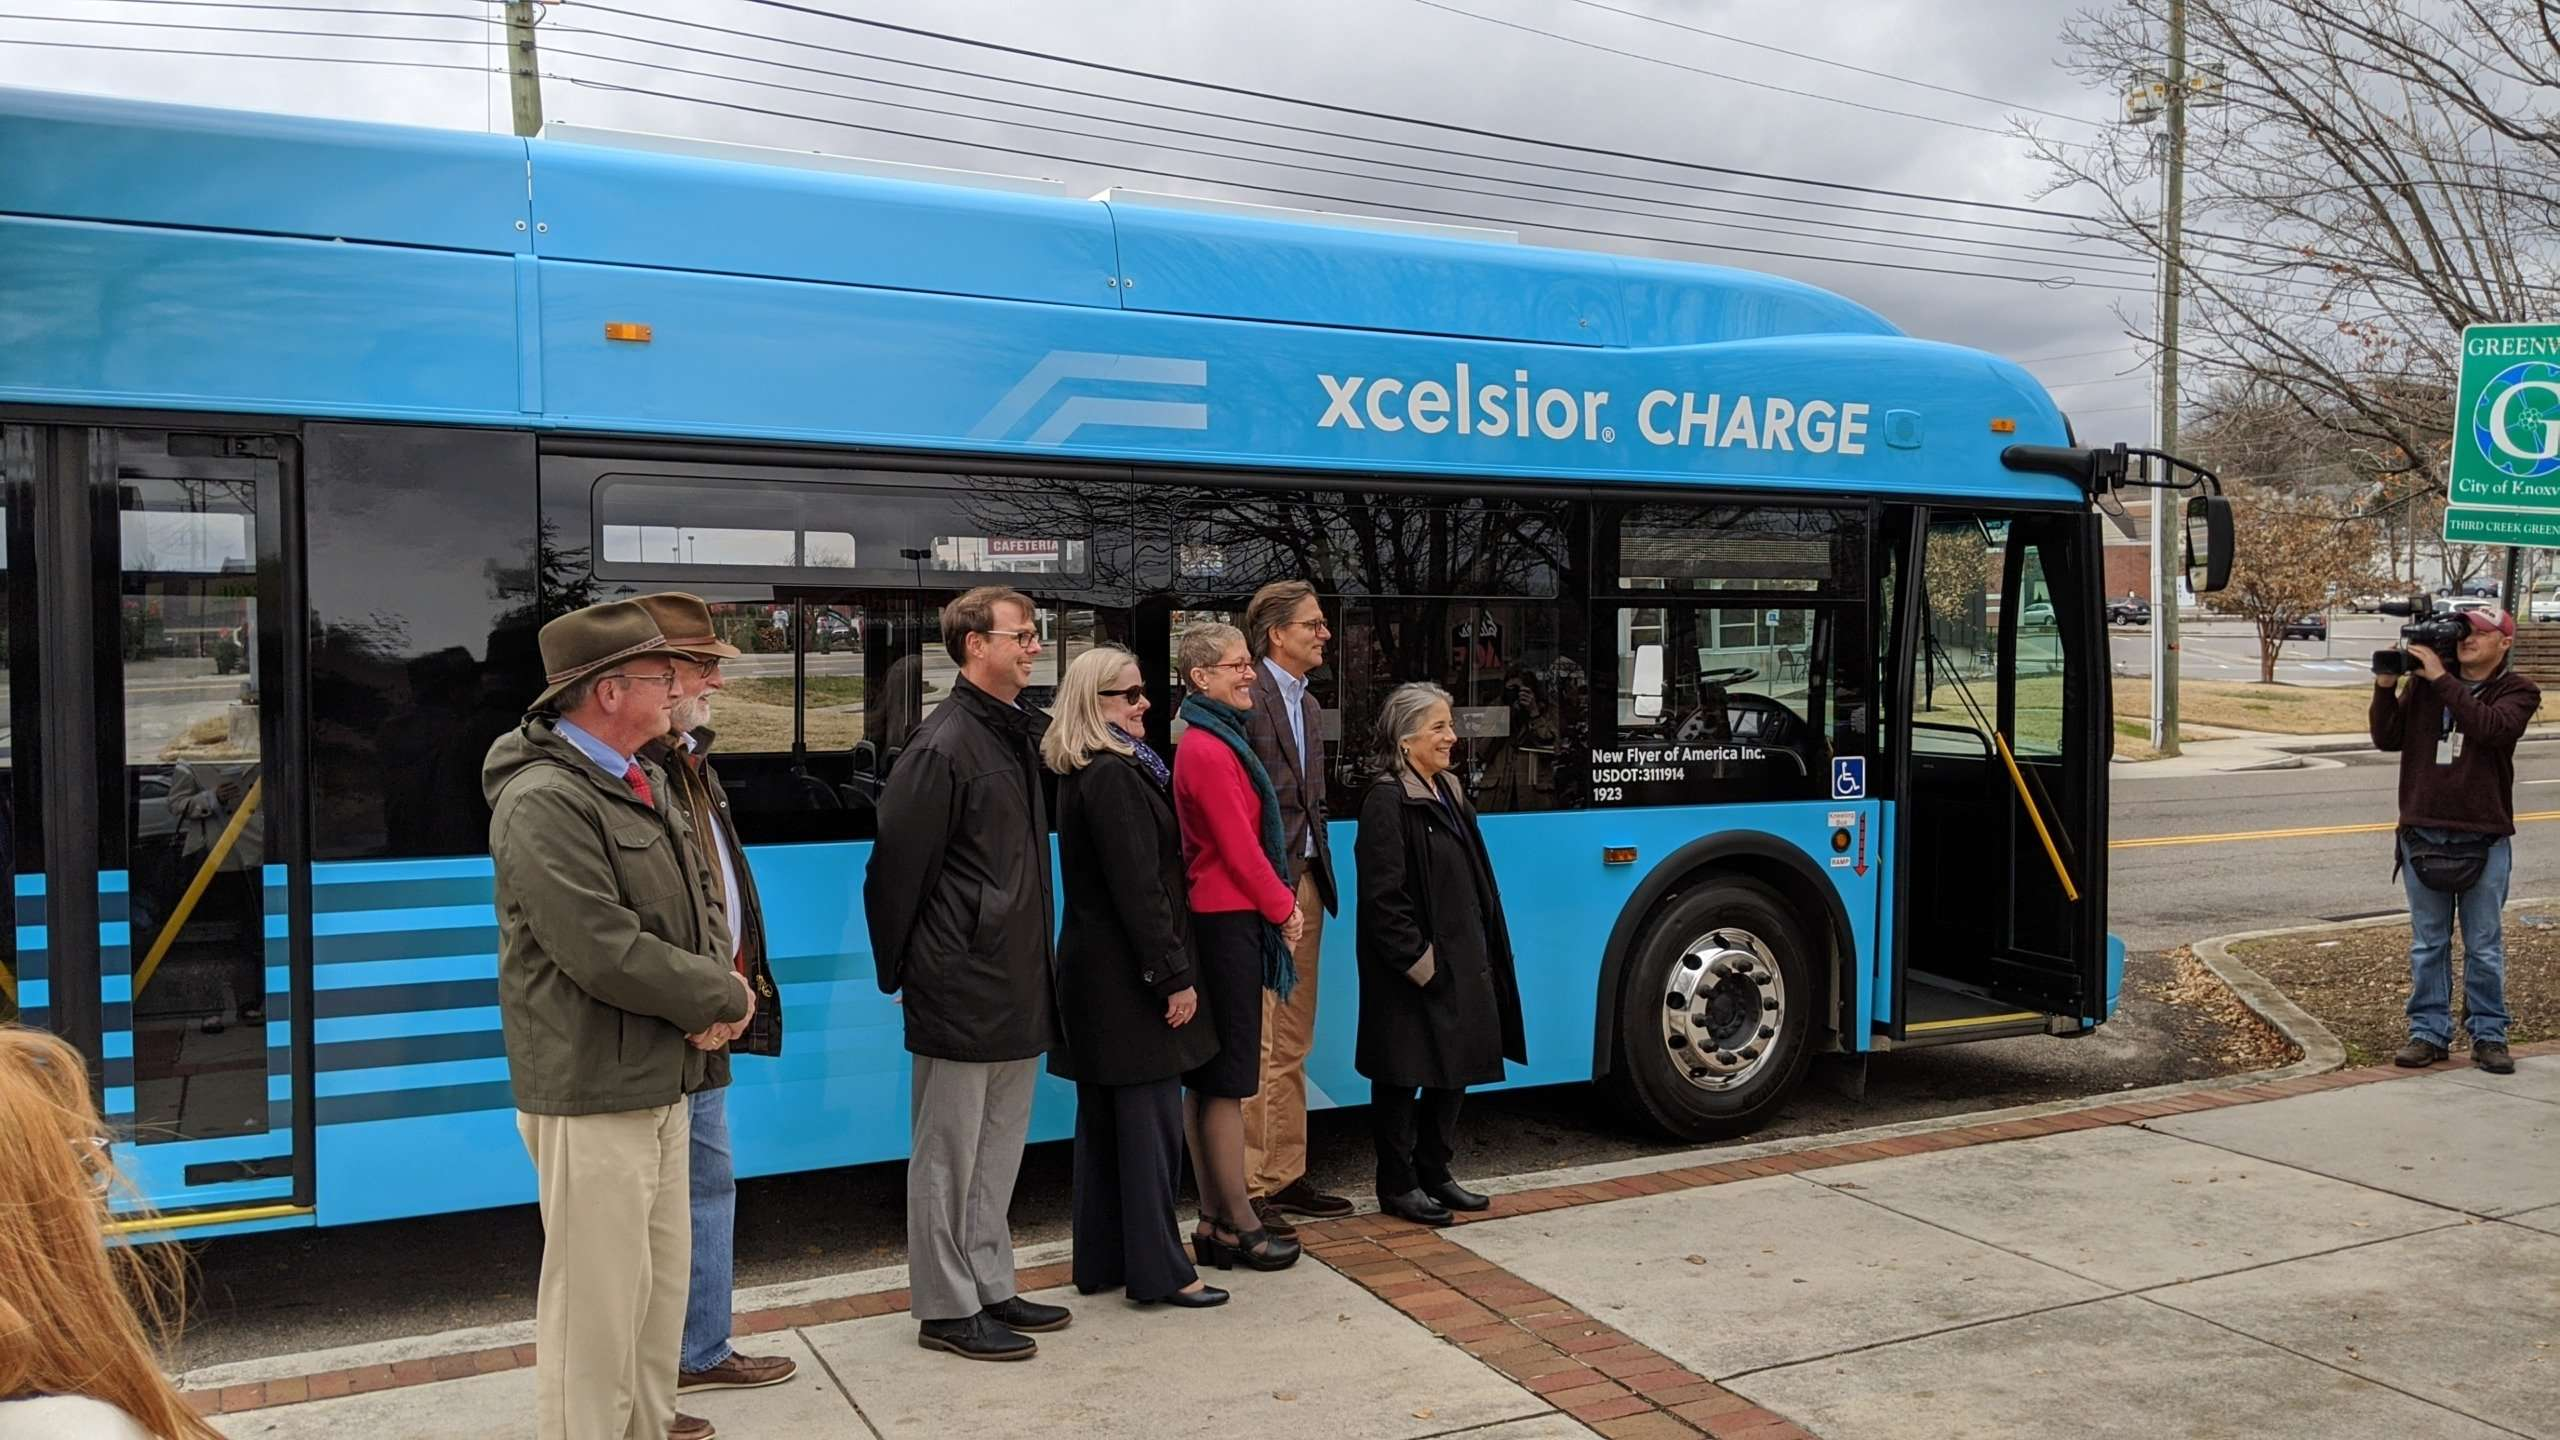 Knoxvxille Areat Transit (KAT) Electric Buses Introduction - Public event to introduce citizens and businesses to the forthcoming fleet of new EV mass transit buses.